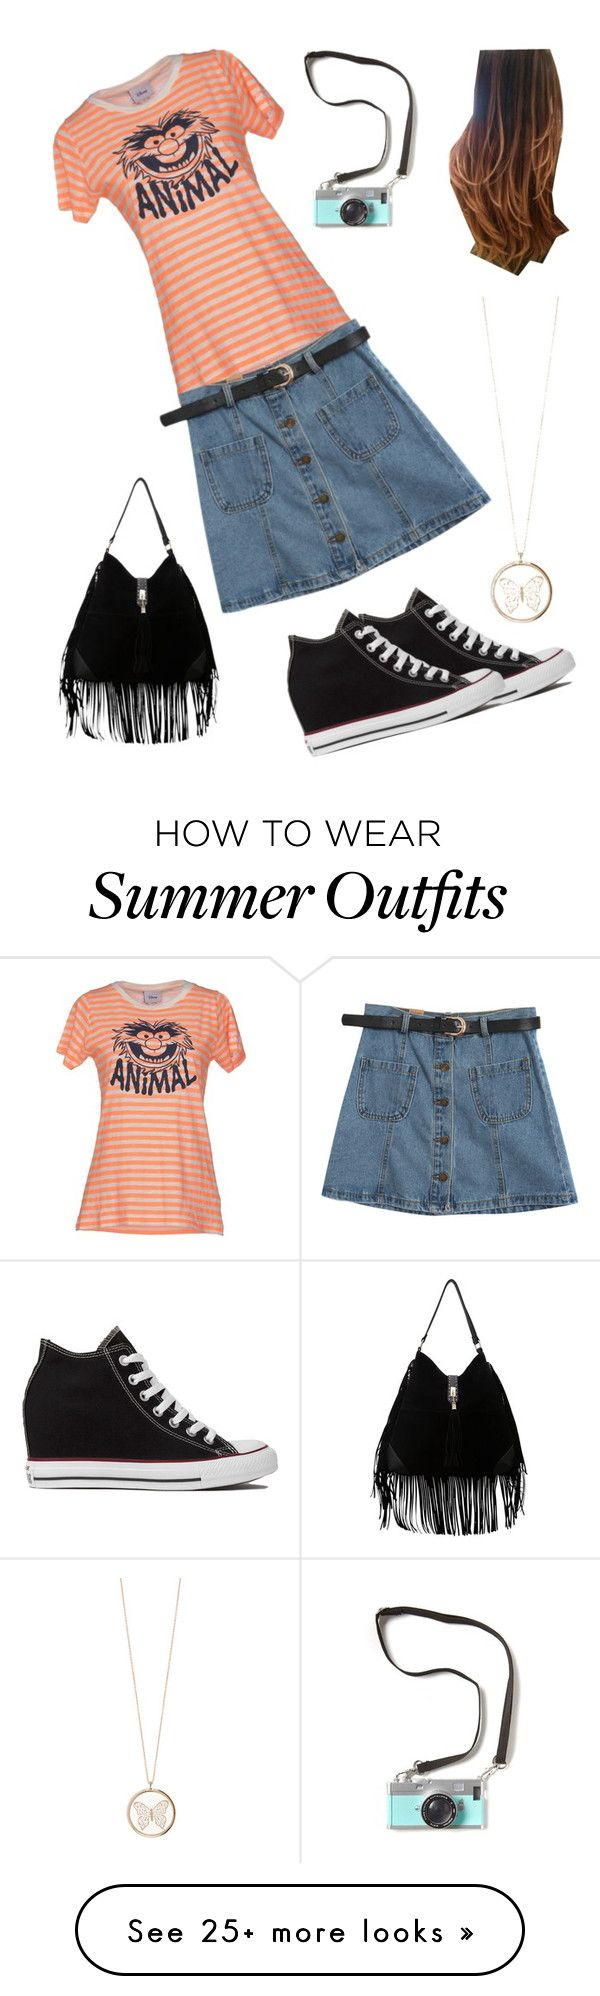 """""""Summer Day Outing Outfit"""" by cooljen13 on Polyvore featuring Disney, Chicnova Fashion, Accessorize and Converse"""